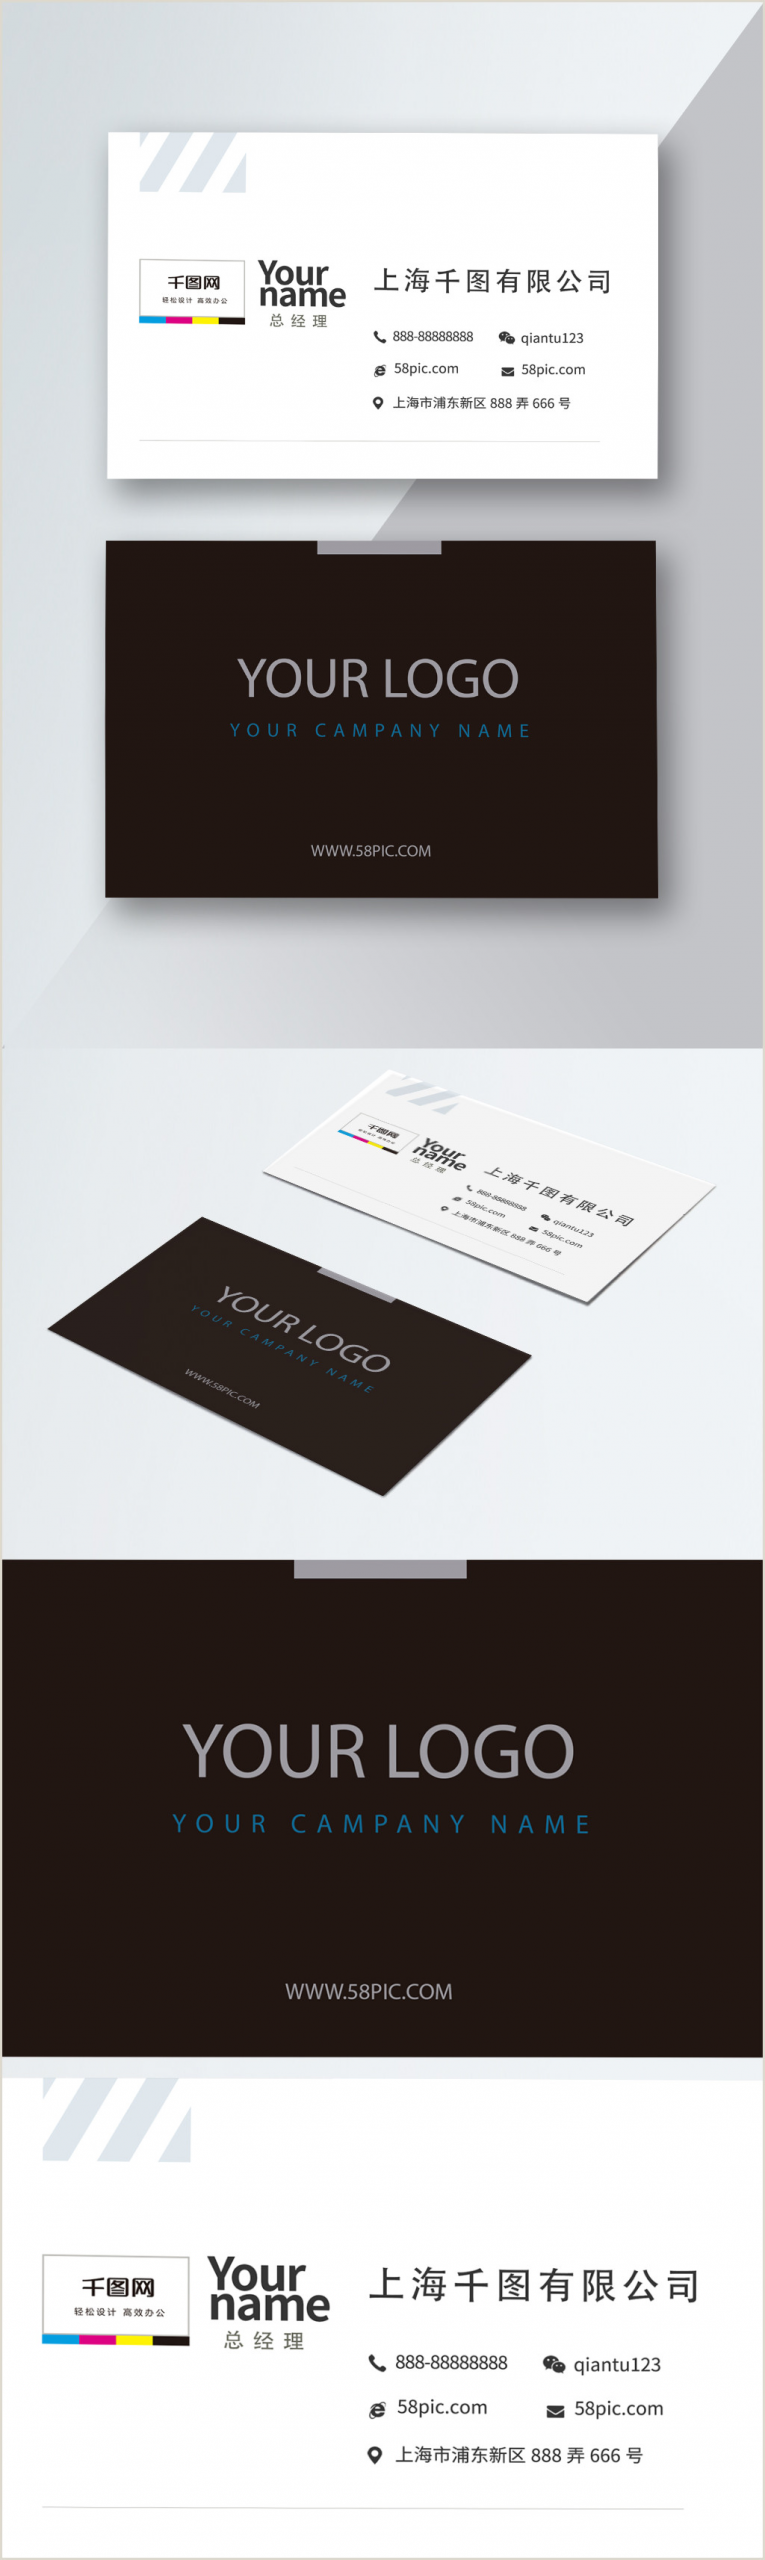 Black And Silver Business Cards Black And White Business Senior Business Card With Qr Code